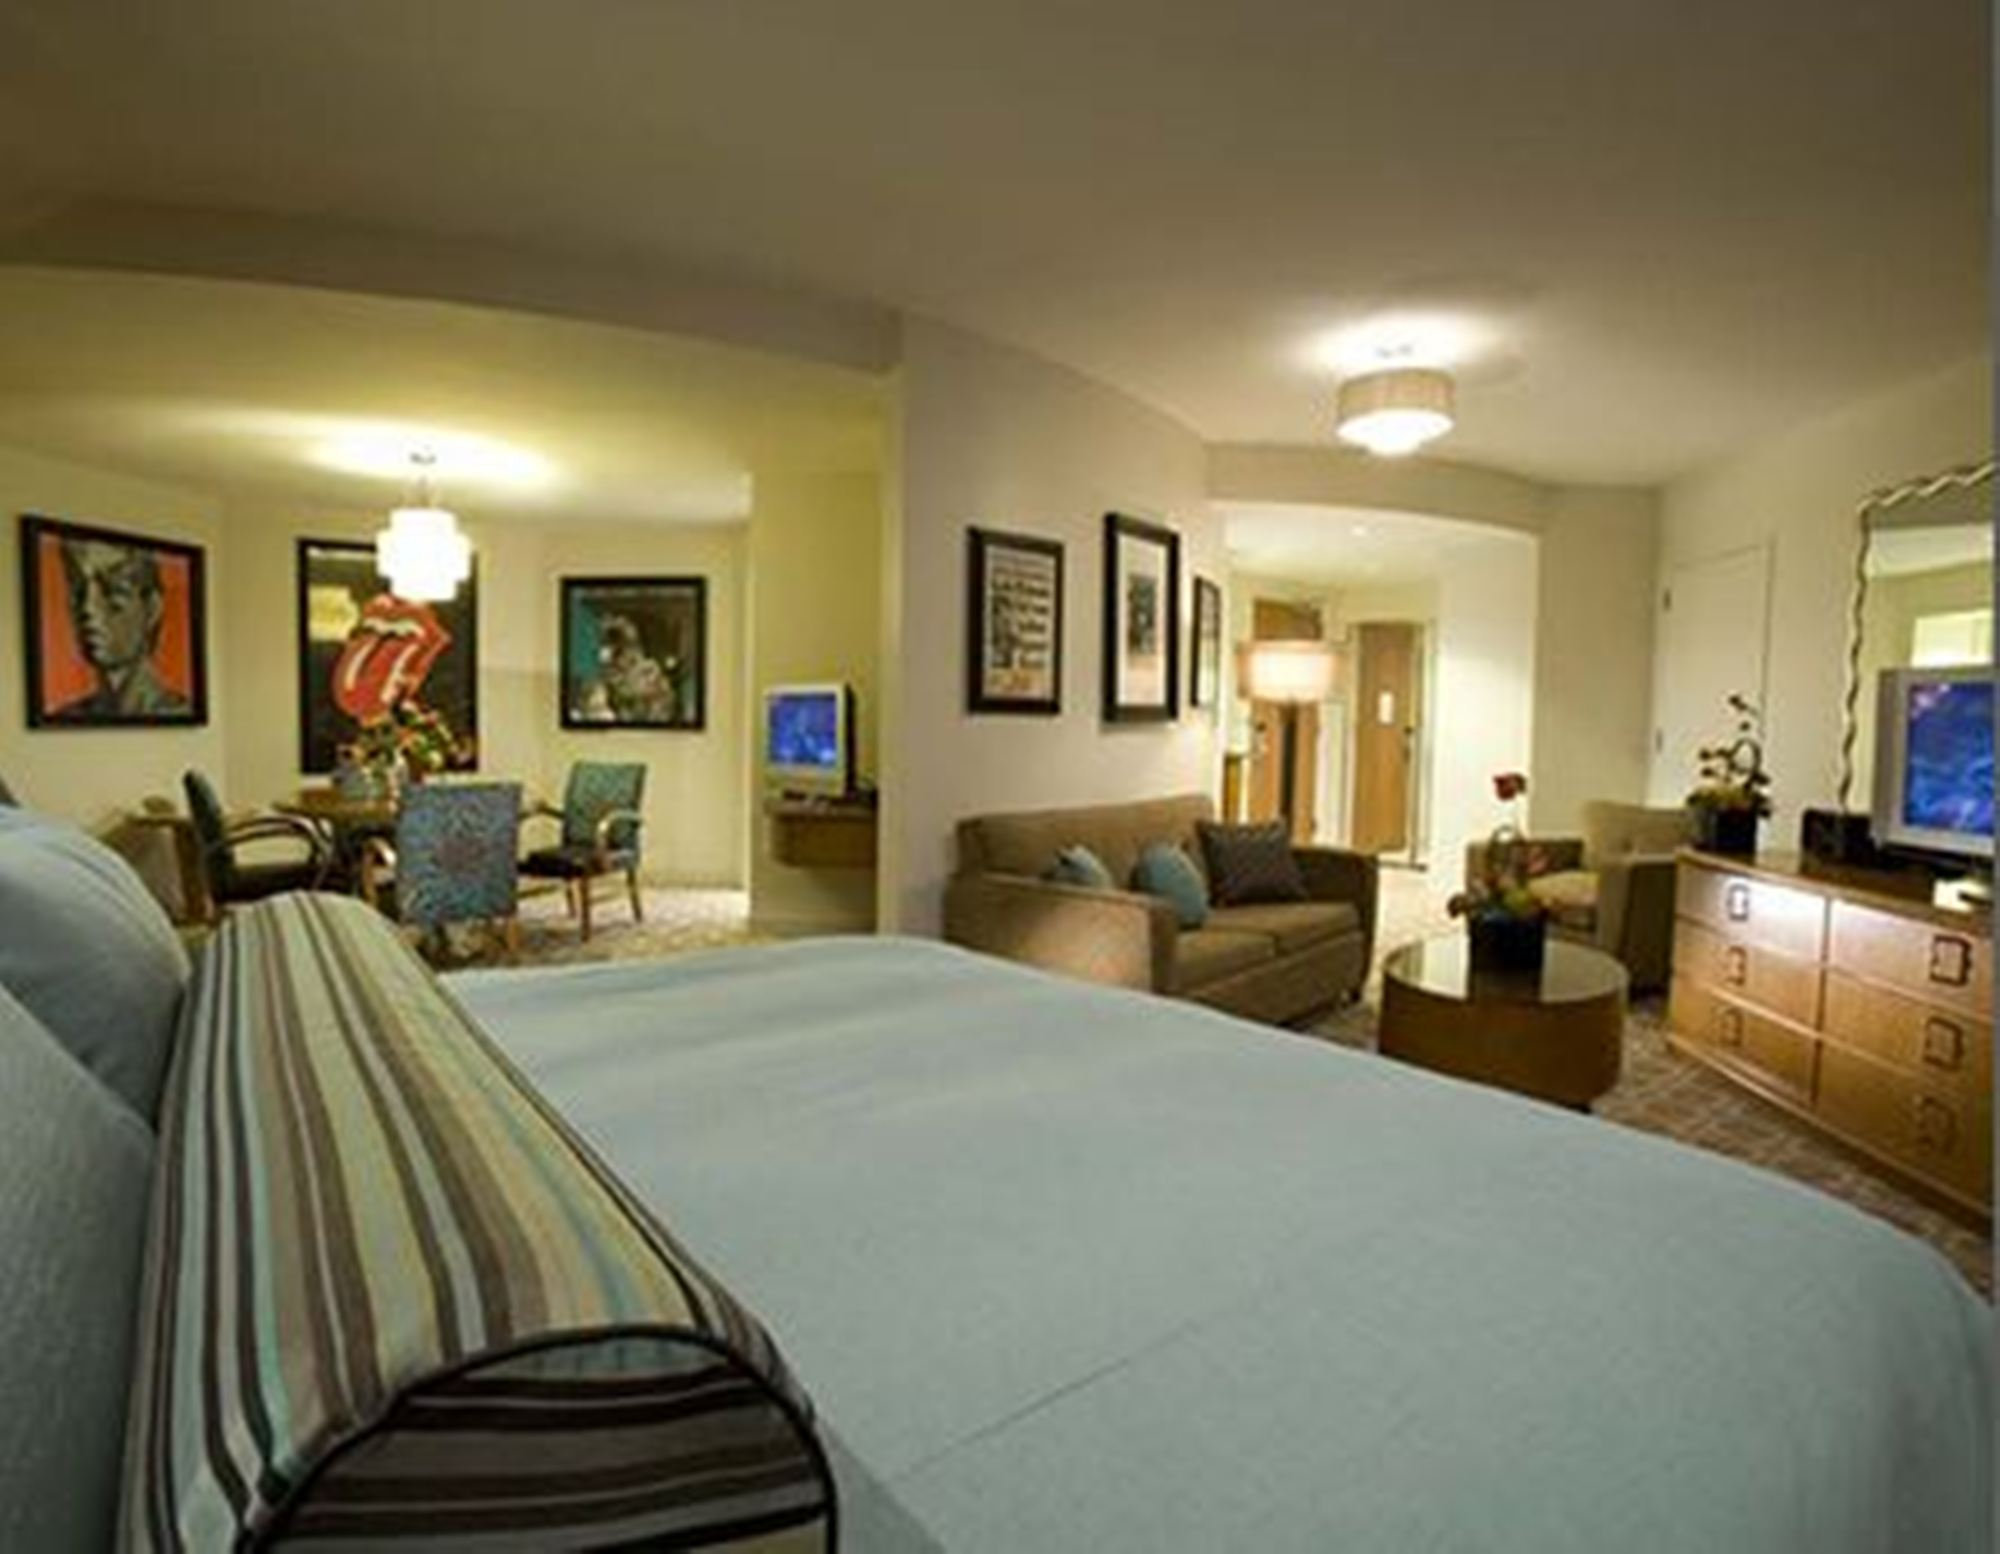 Two Bedroom Hotel Rooms In Orlando - Room Image and